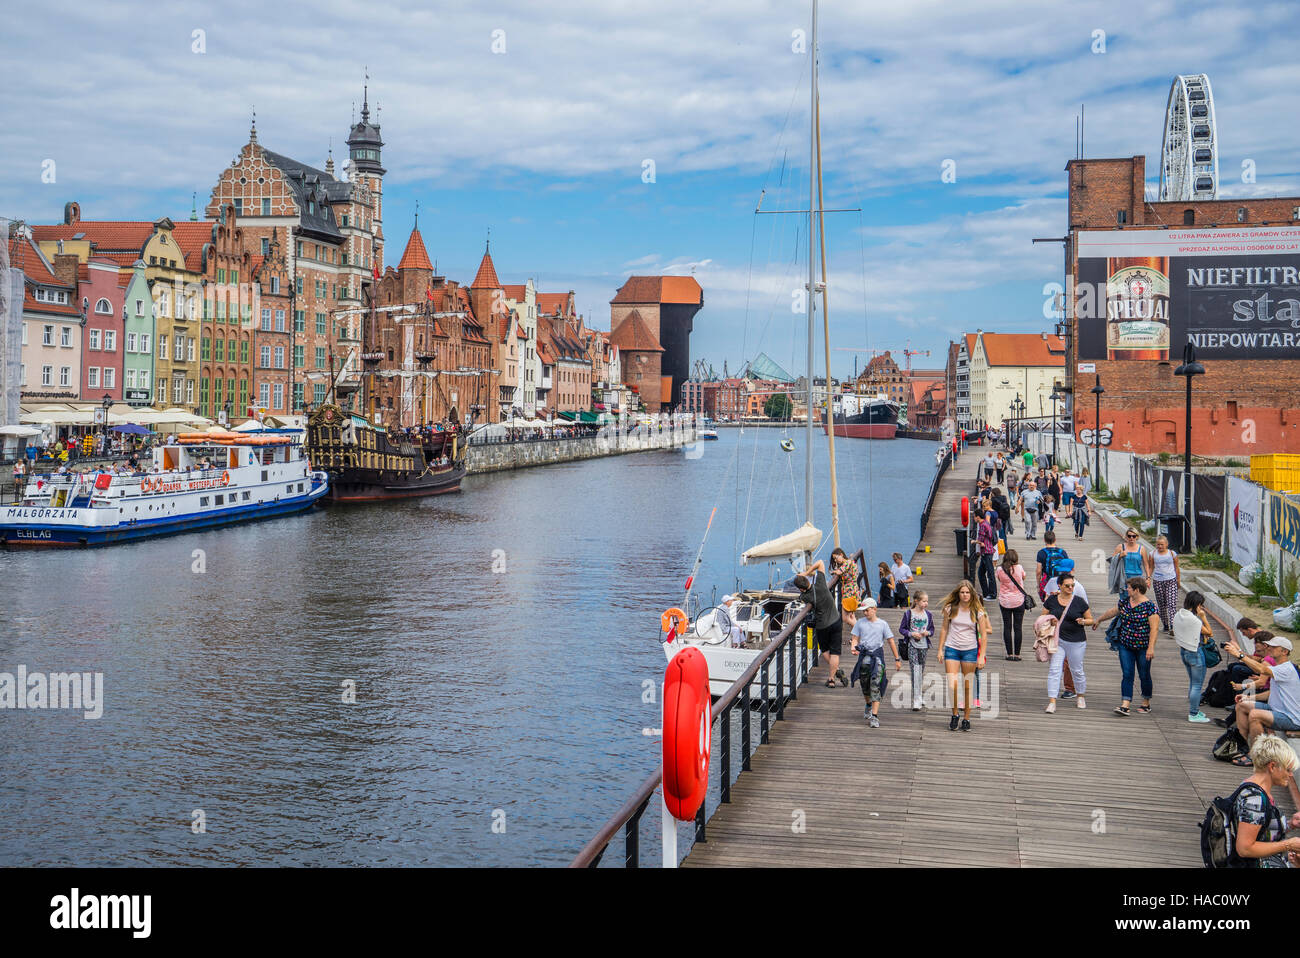 Poland, Pomerania, Gdansk, boardwalk on Granary Island with view of Mottlau River and the Long Bridge quayside promenade - Stock Image